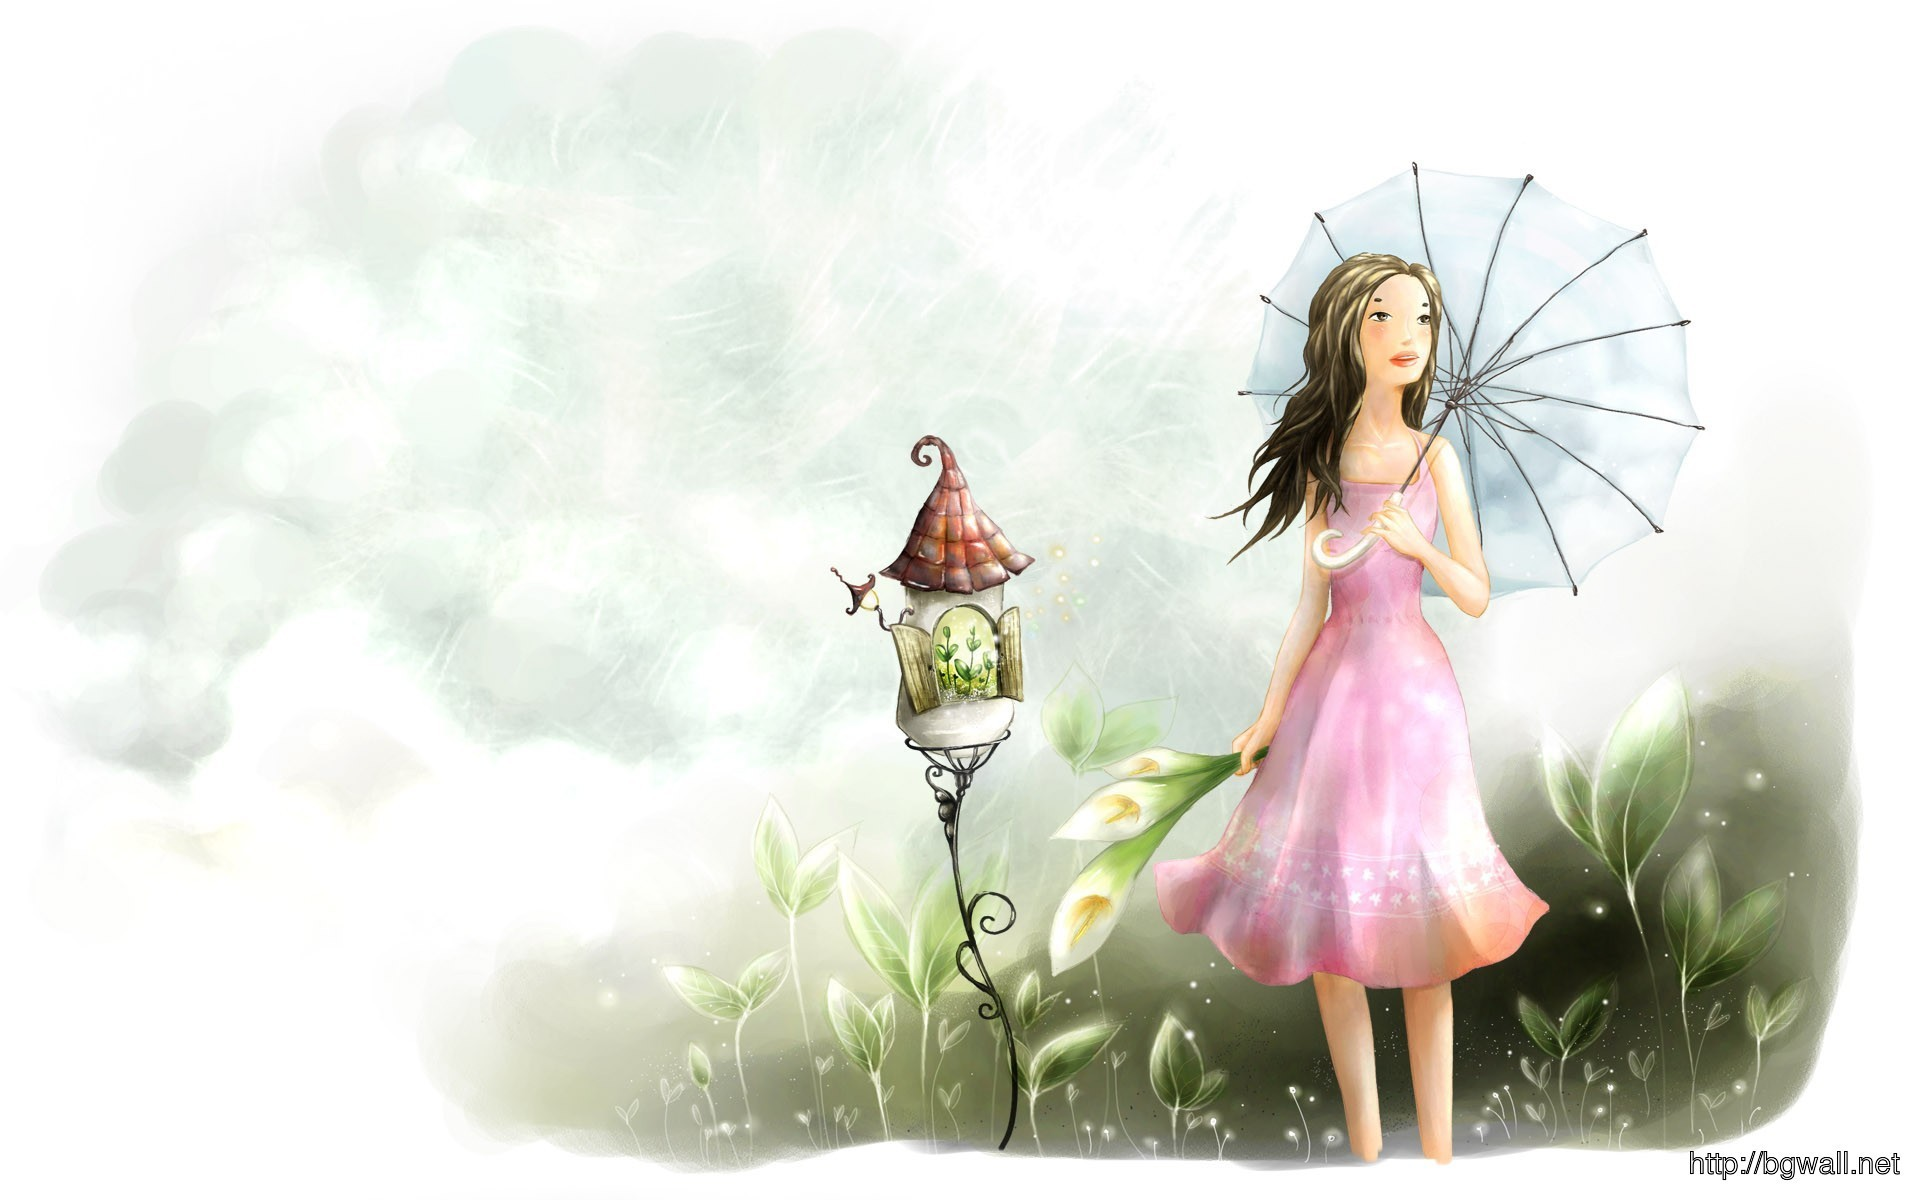 Cute backgrounds for laptops wallpapertag - Cute wallpapers for a laptop ...